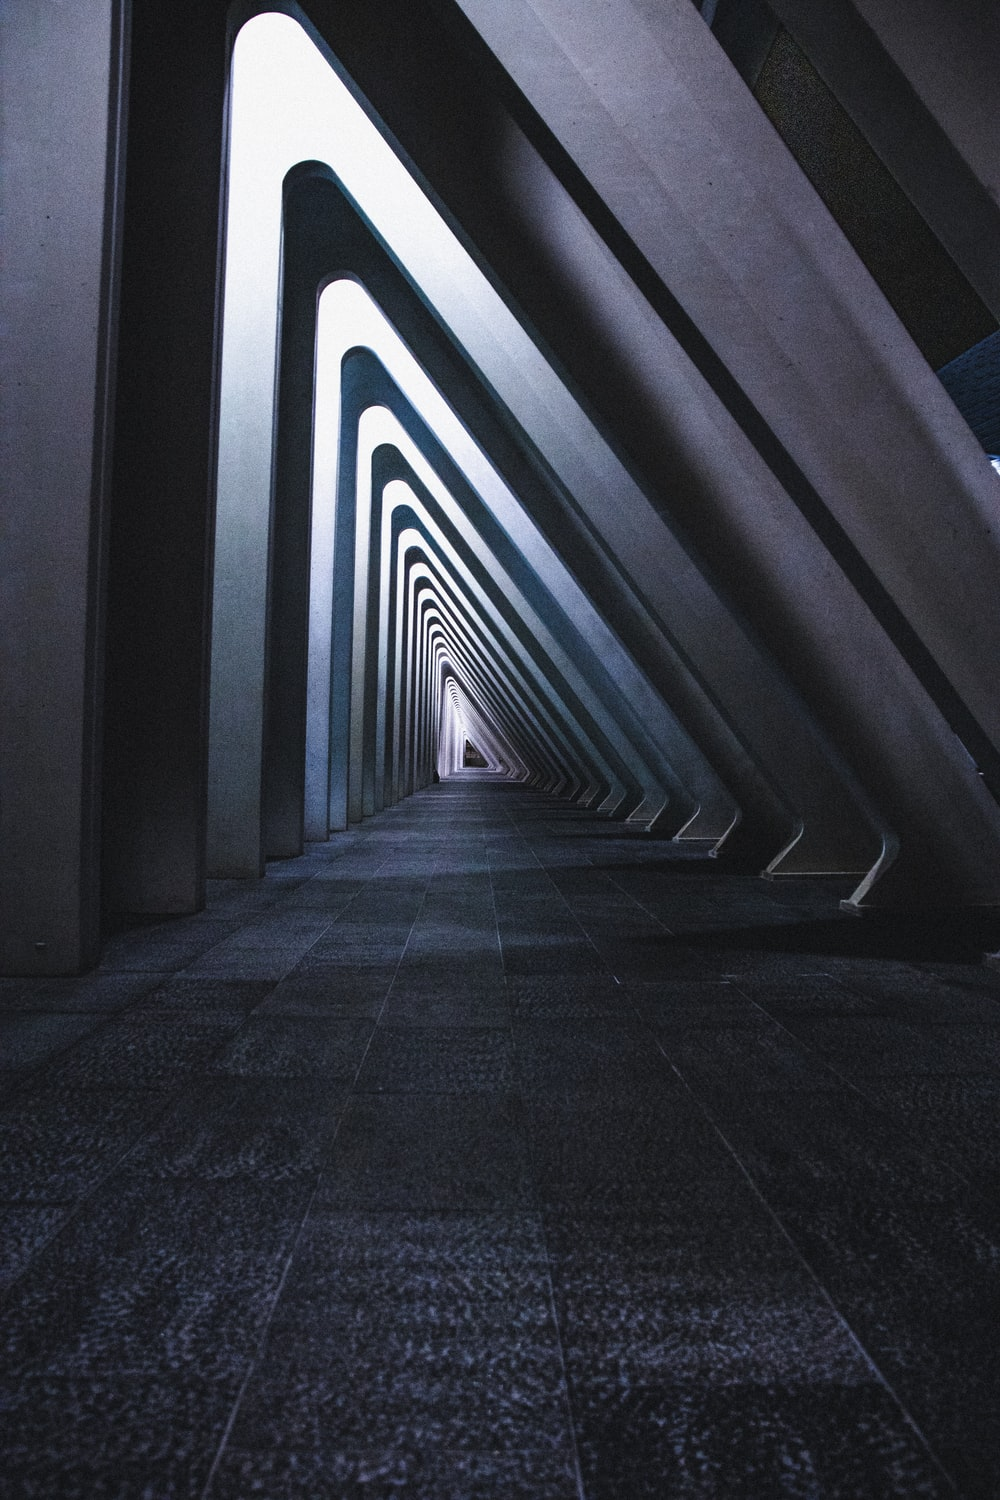 gray concrete hallway with white and blue lights